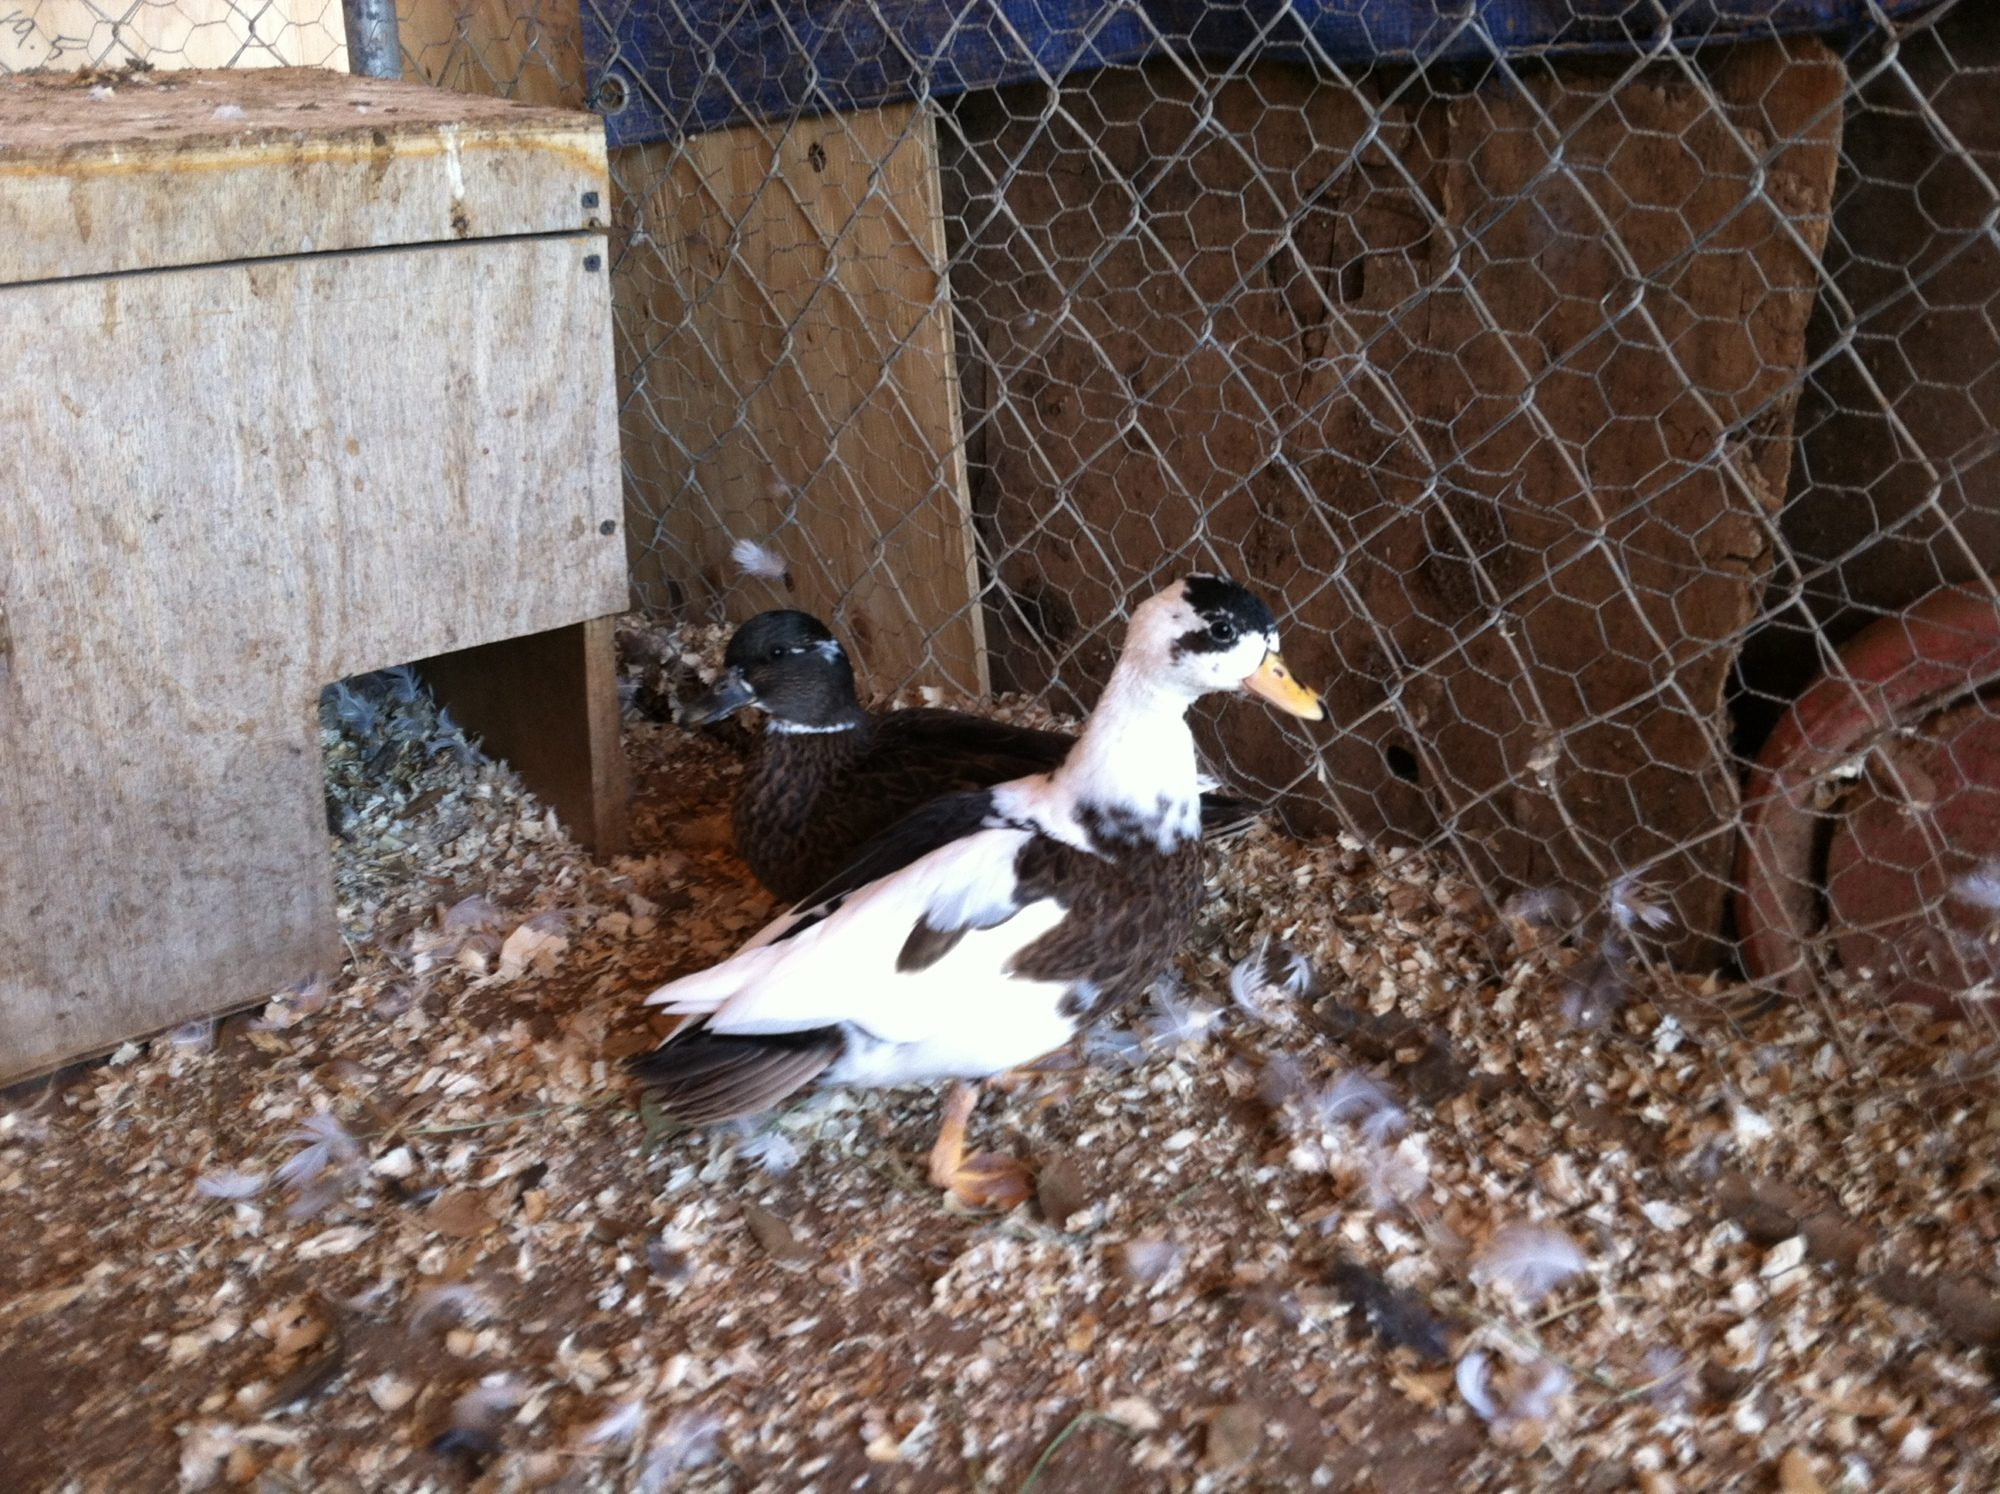 Penciled cockerel and dusky pied pullet